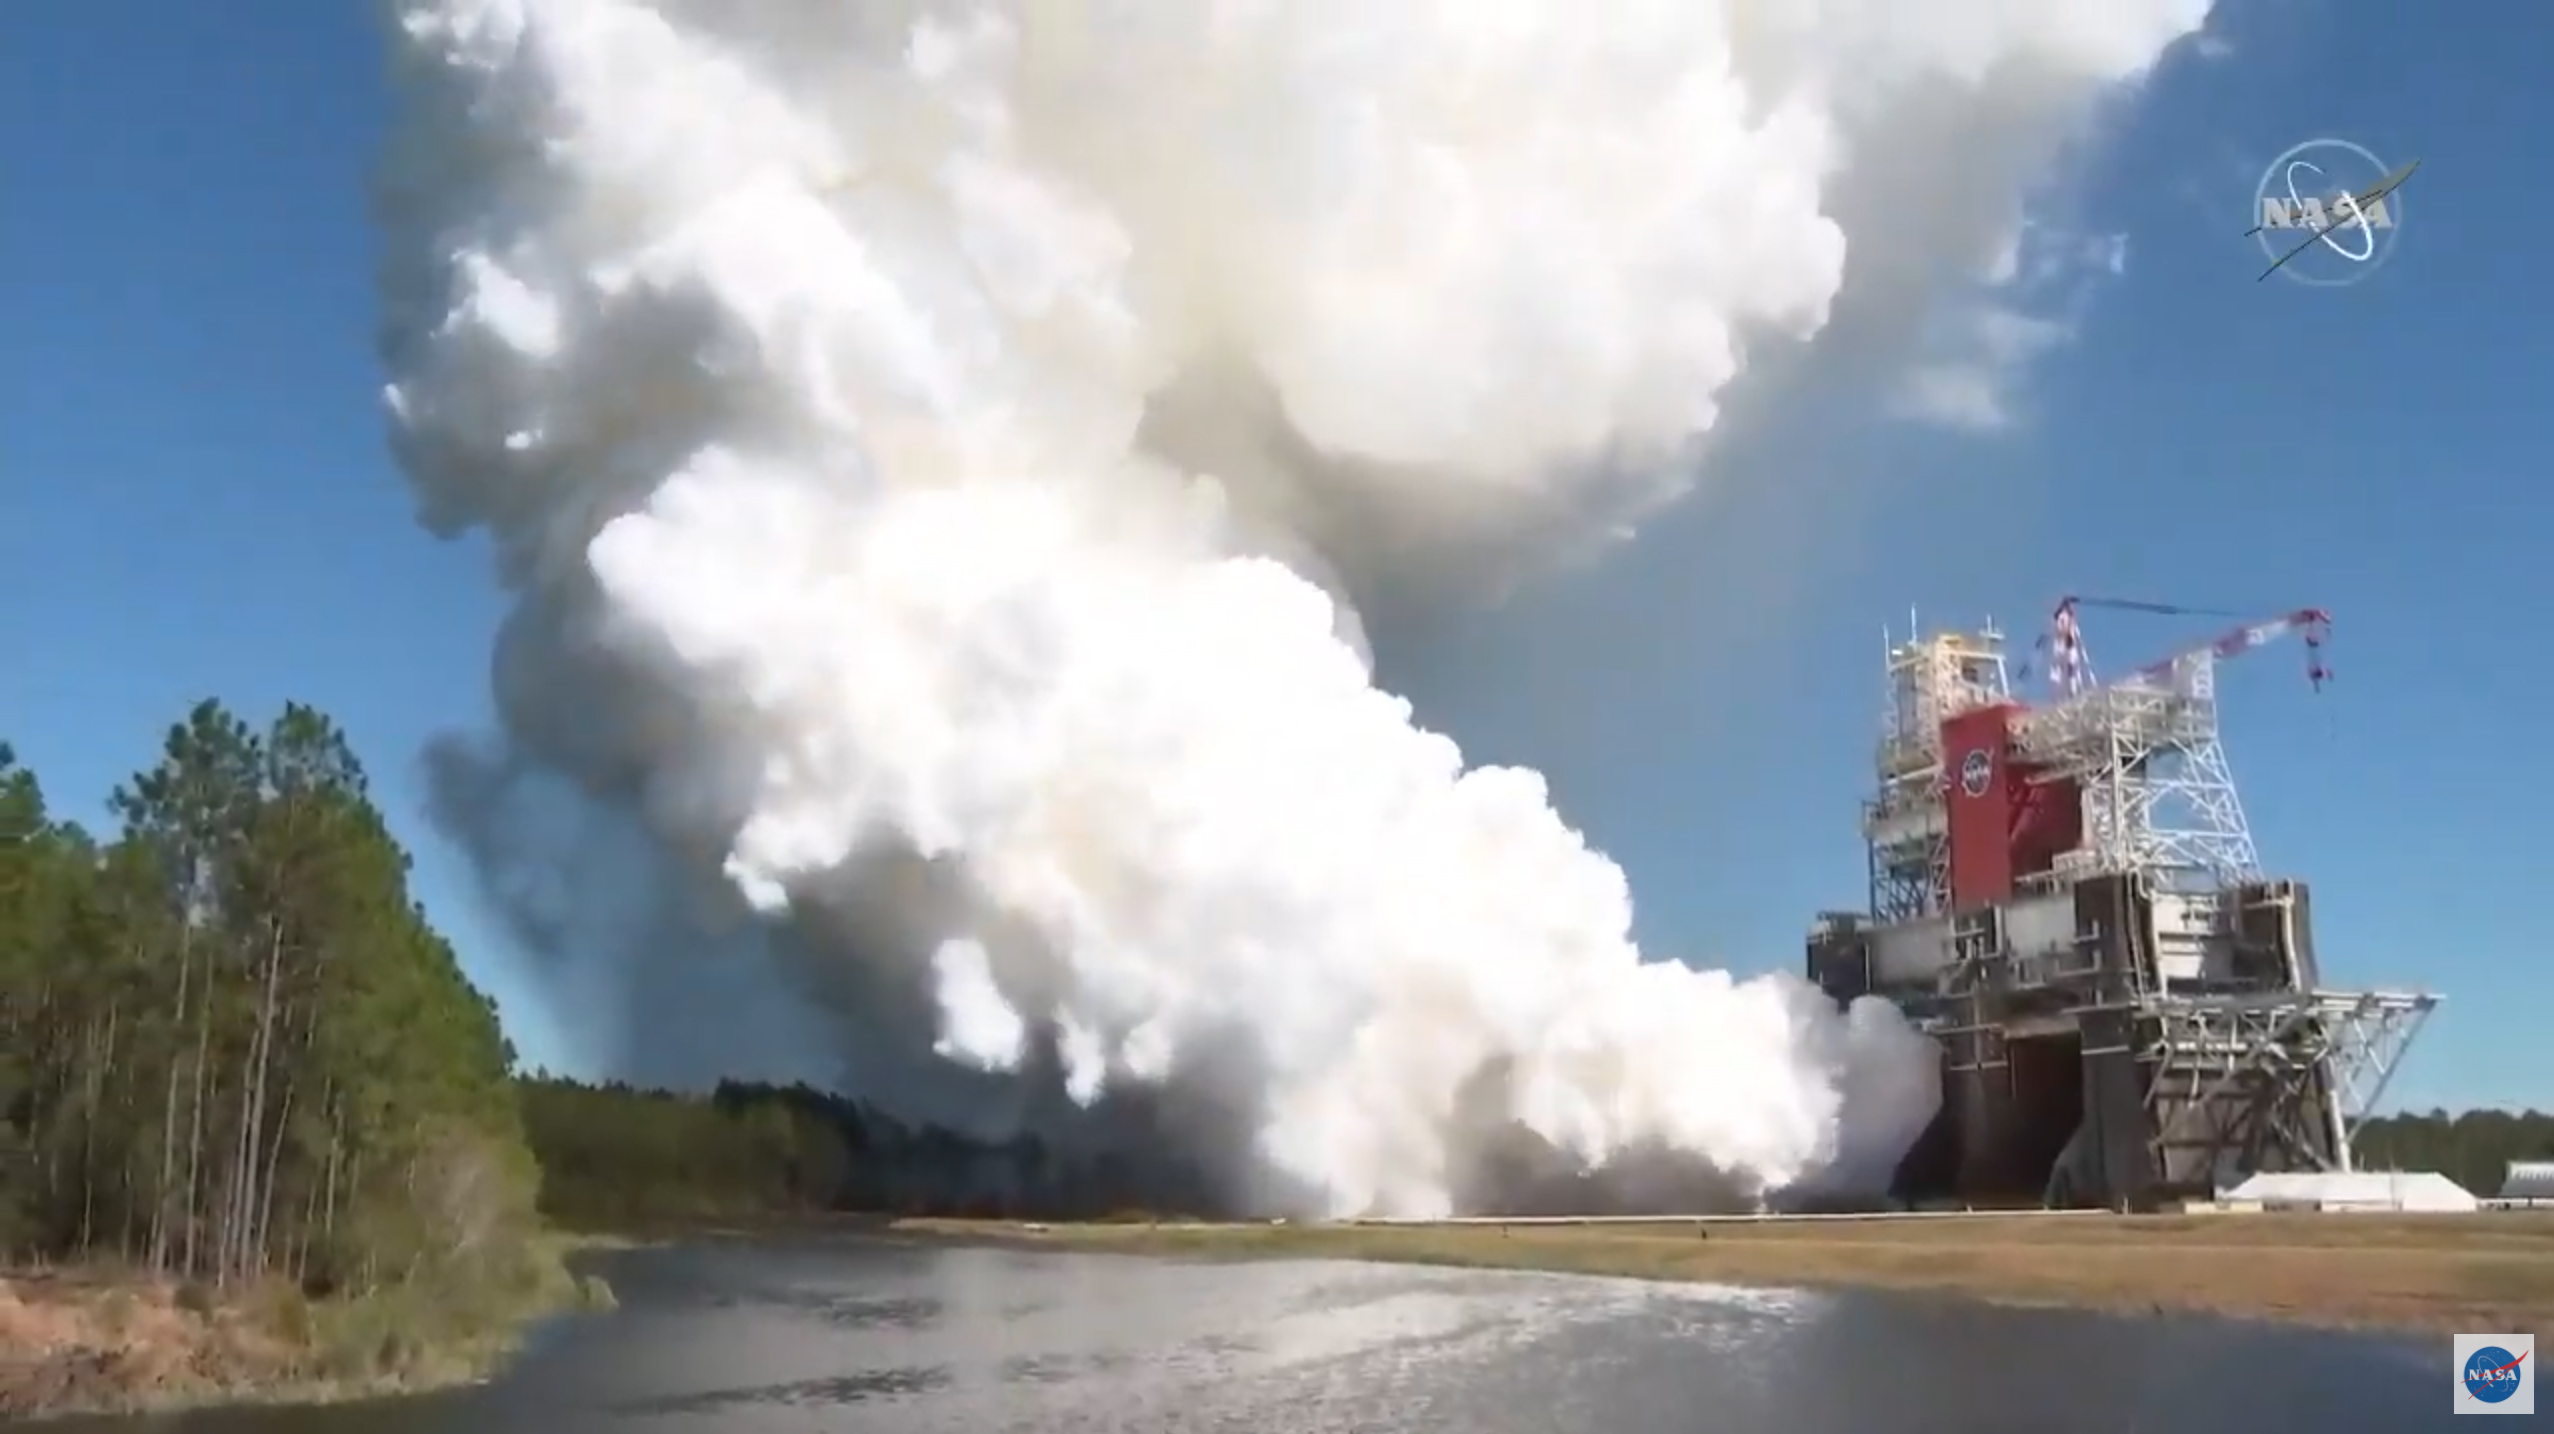 NASA successfully tests SLS rocket that will help Artemis astronauts reach the moon